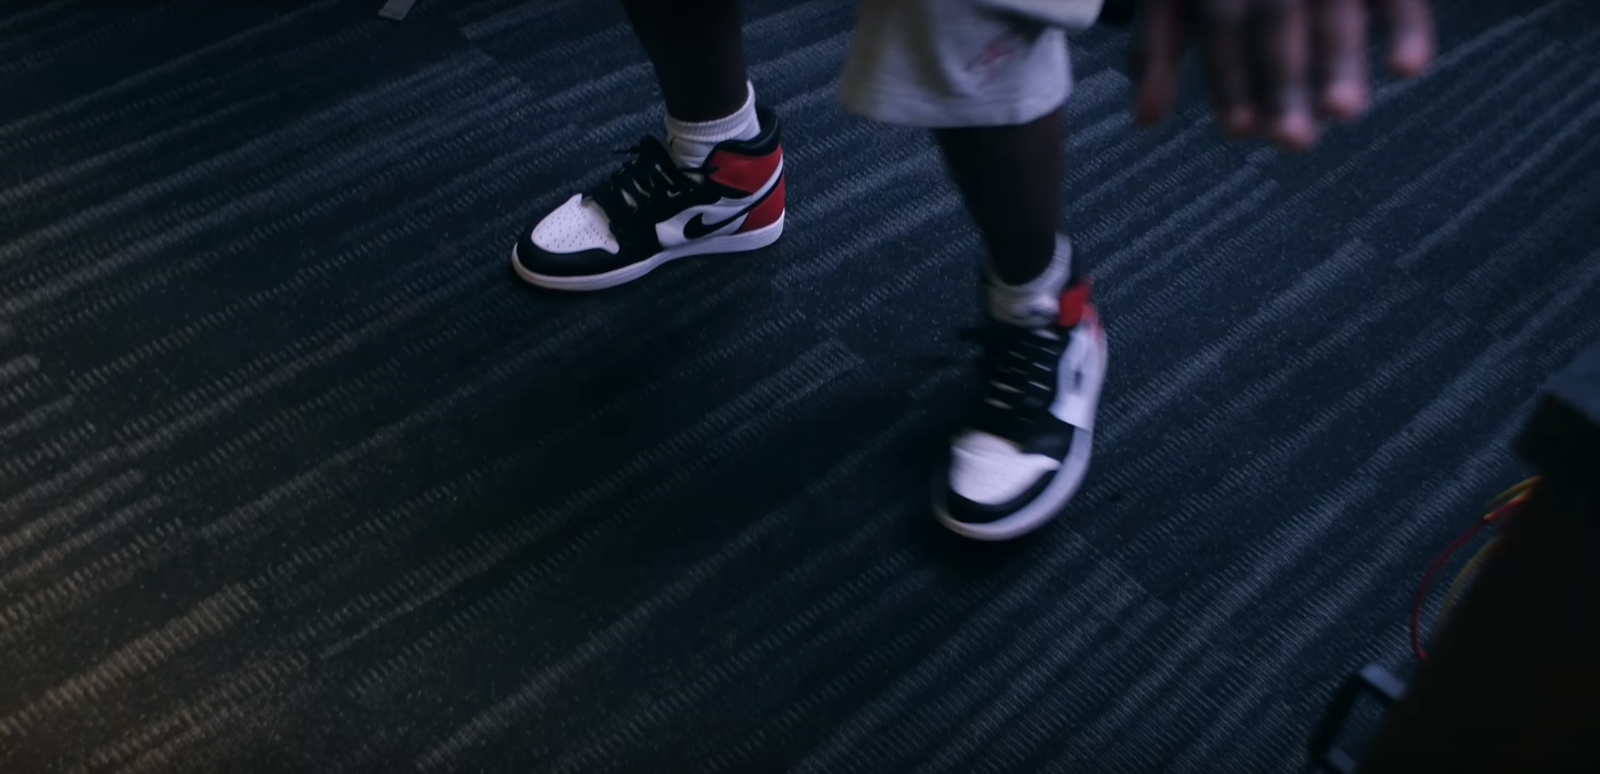 Nike Air Jordan Sneakers – 41 – YoungBoy Never Broke Again (2017) Official Music Video Product Placement